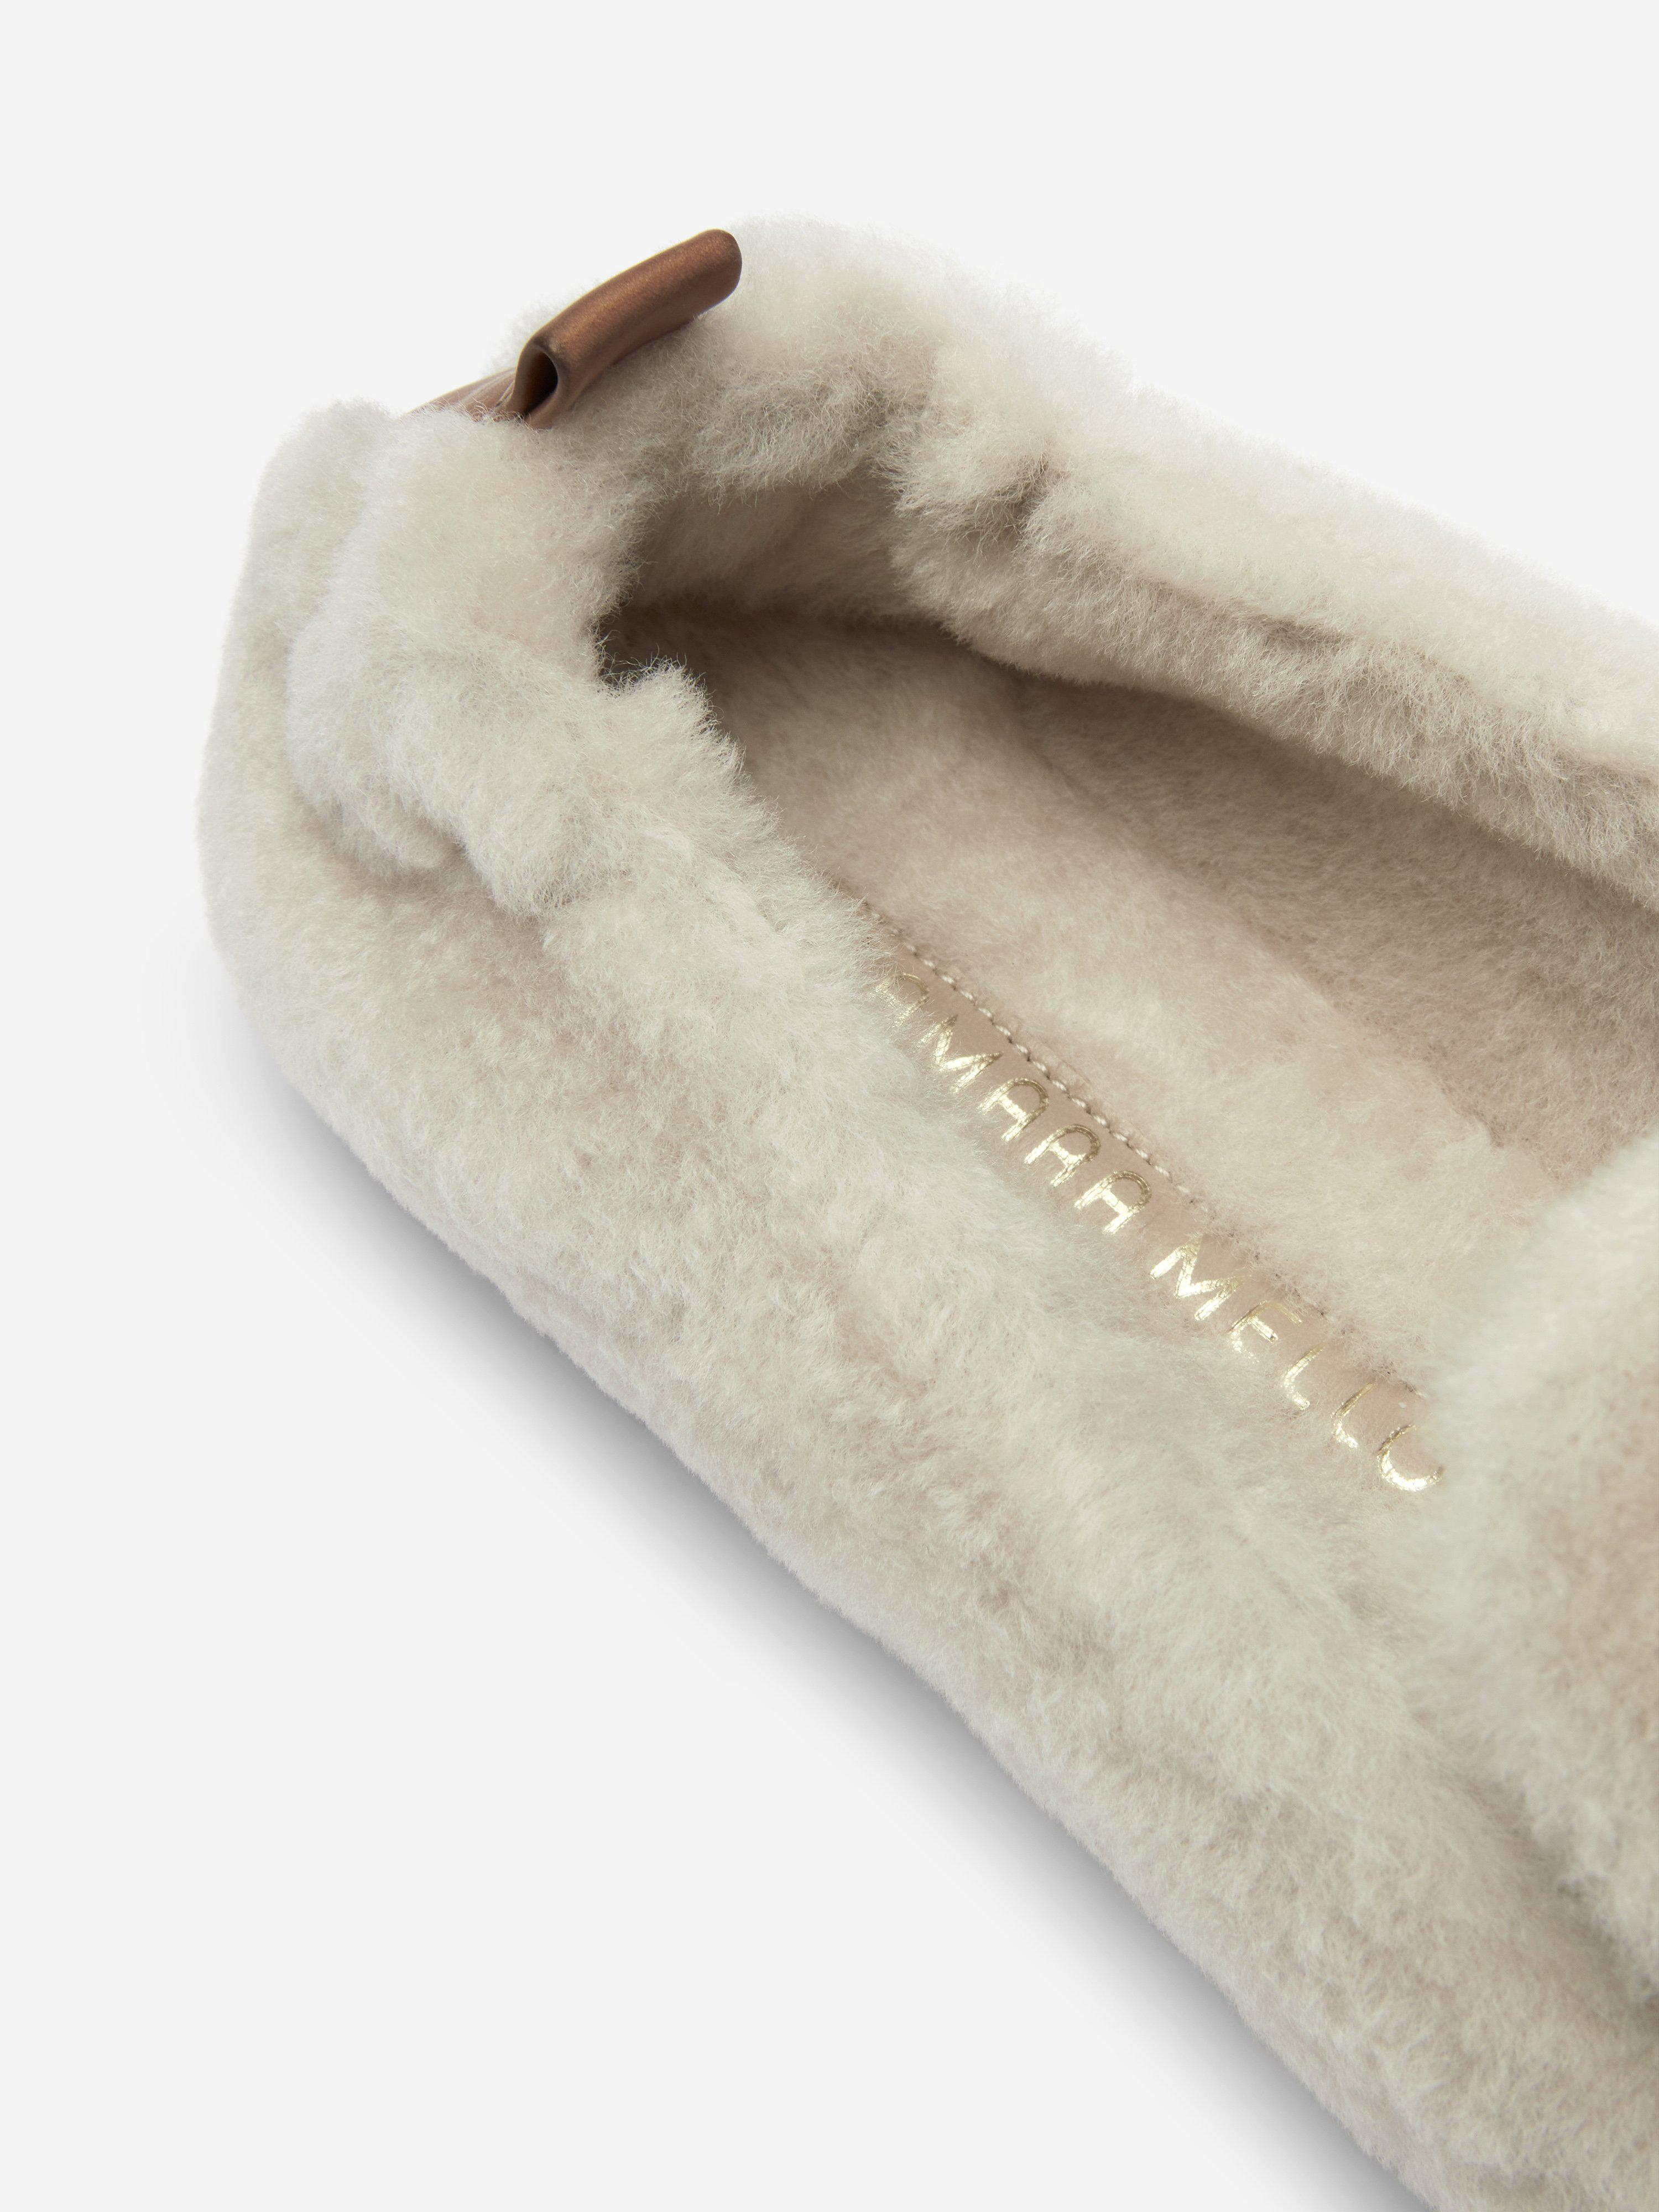 Stow - Shearling 6